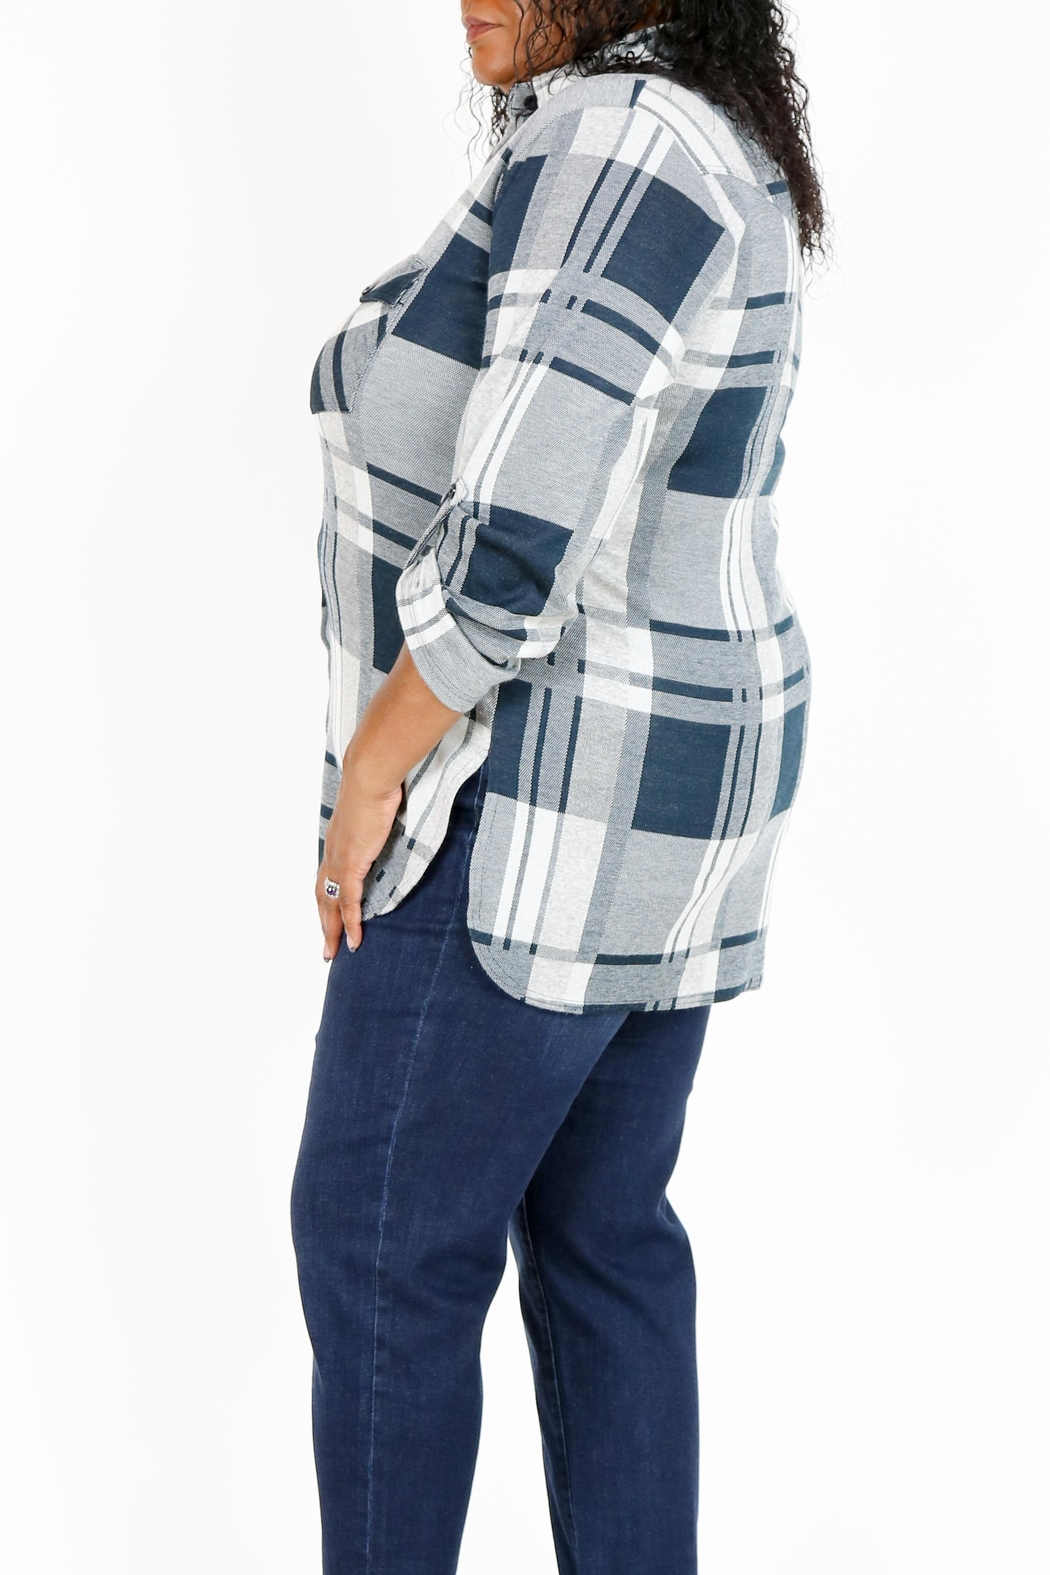 Curvy Fashion USA Plus-Size Plaid Shirt - Side Cropped Image